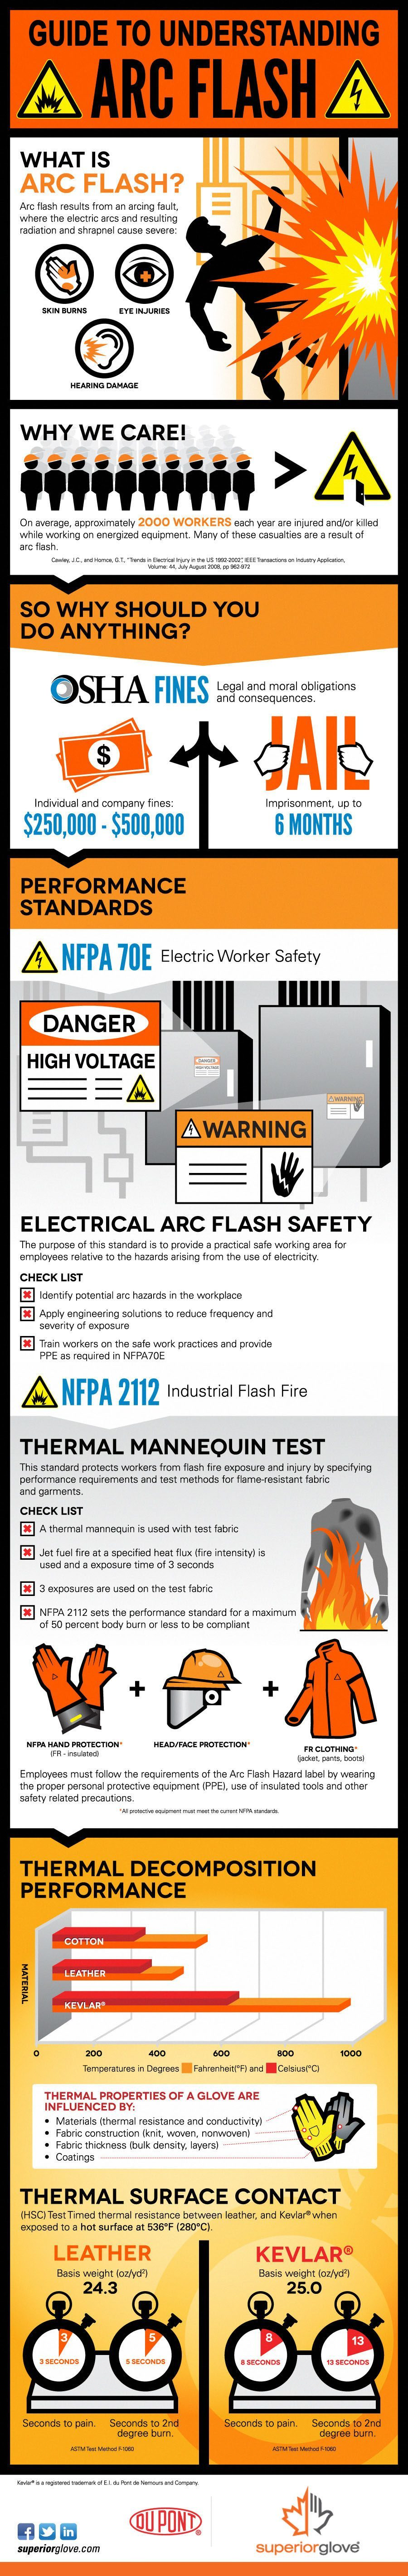 Superior-Glove-Arc-Flash-Infographic